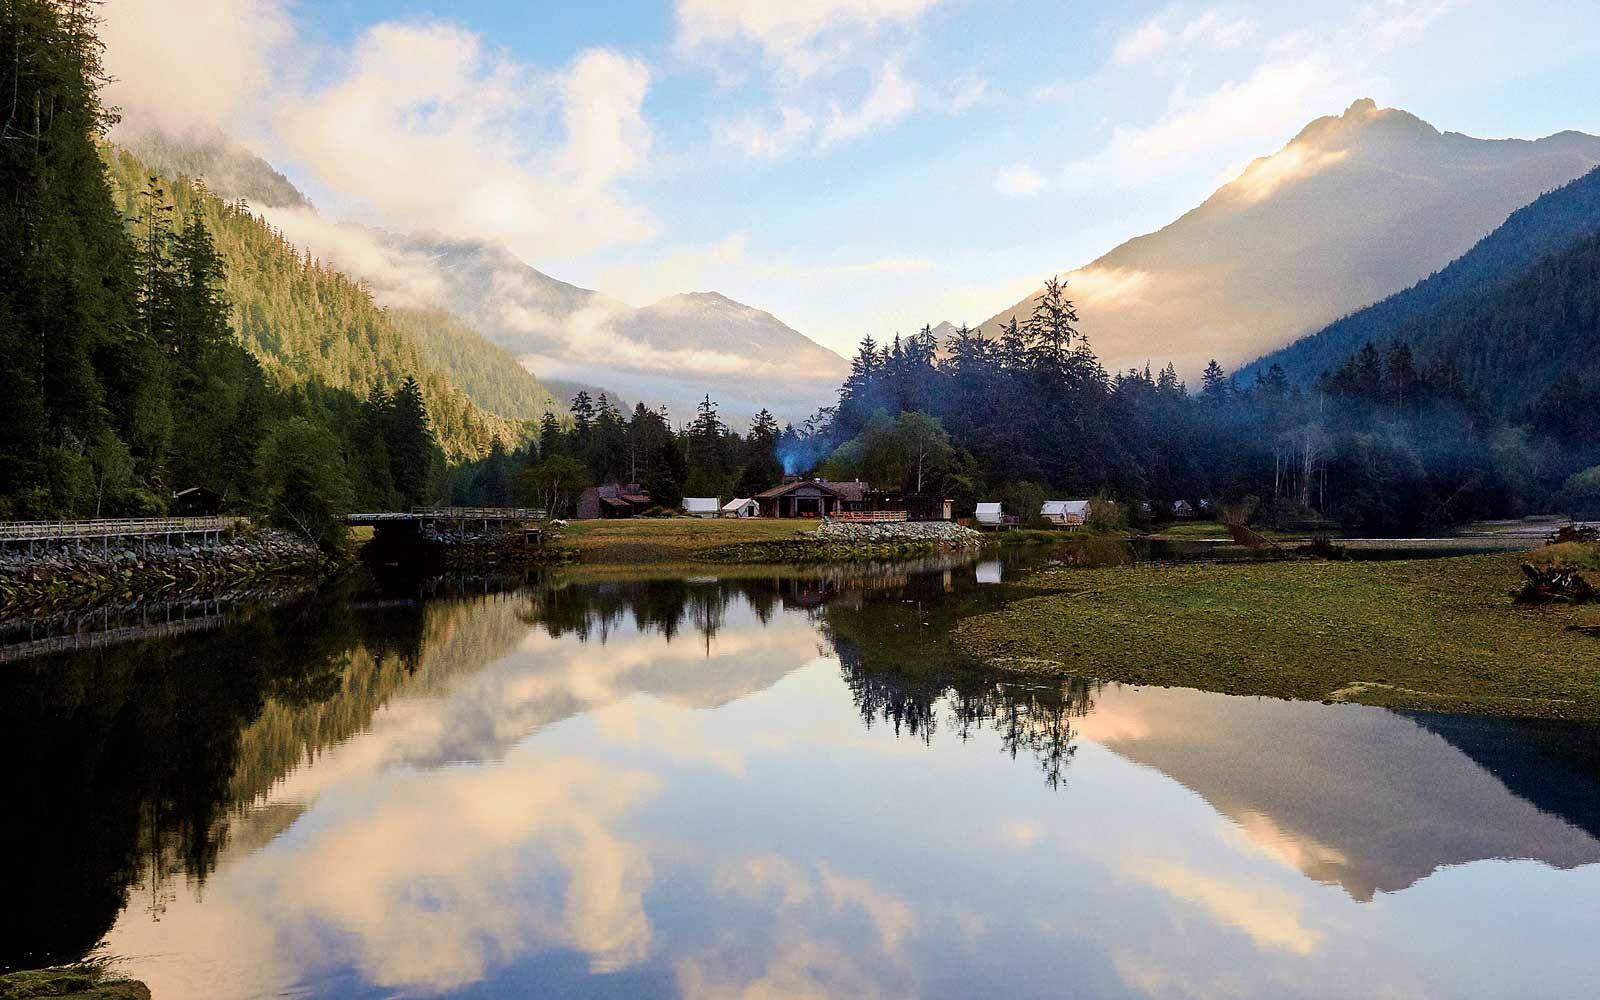 The main camp at the Clayoquot Wilderness Resort in British Columbia